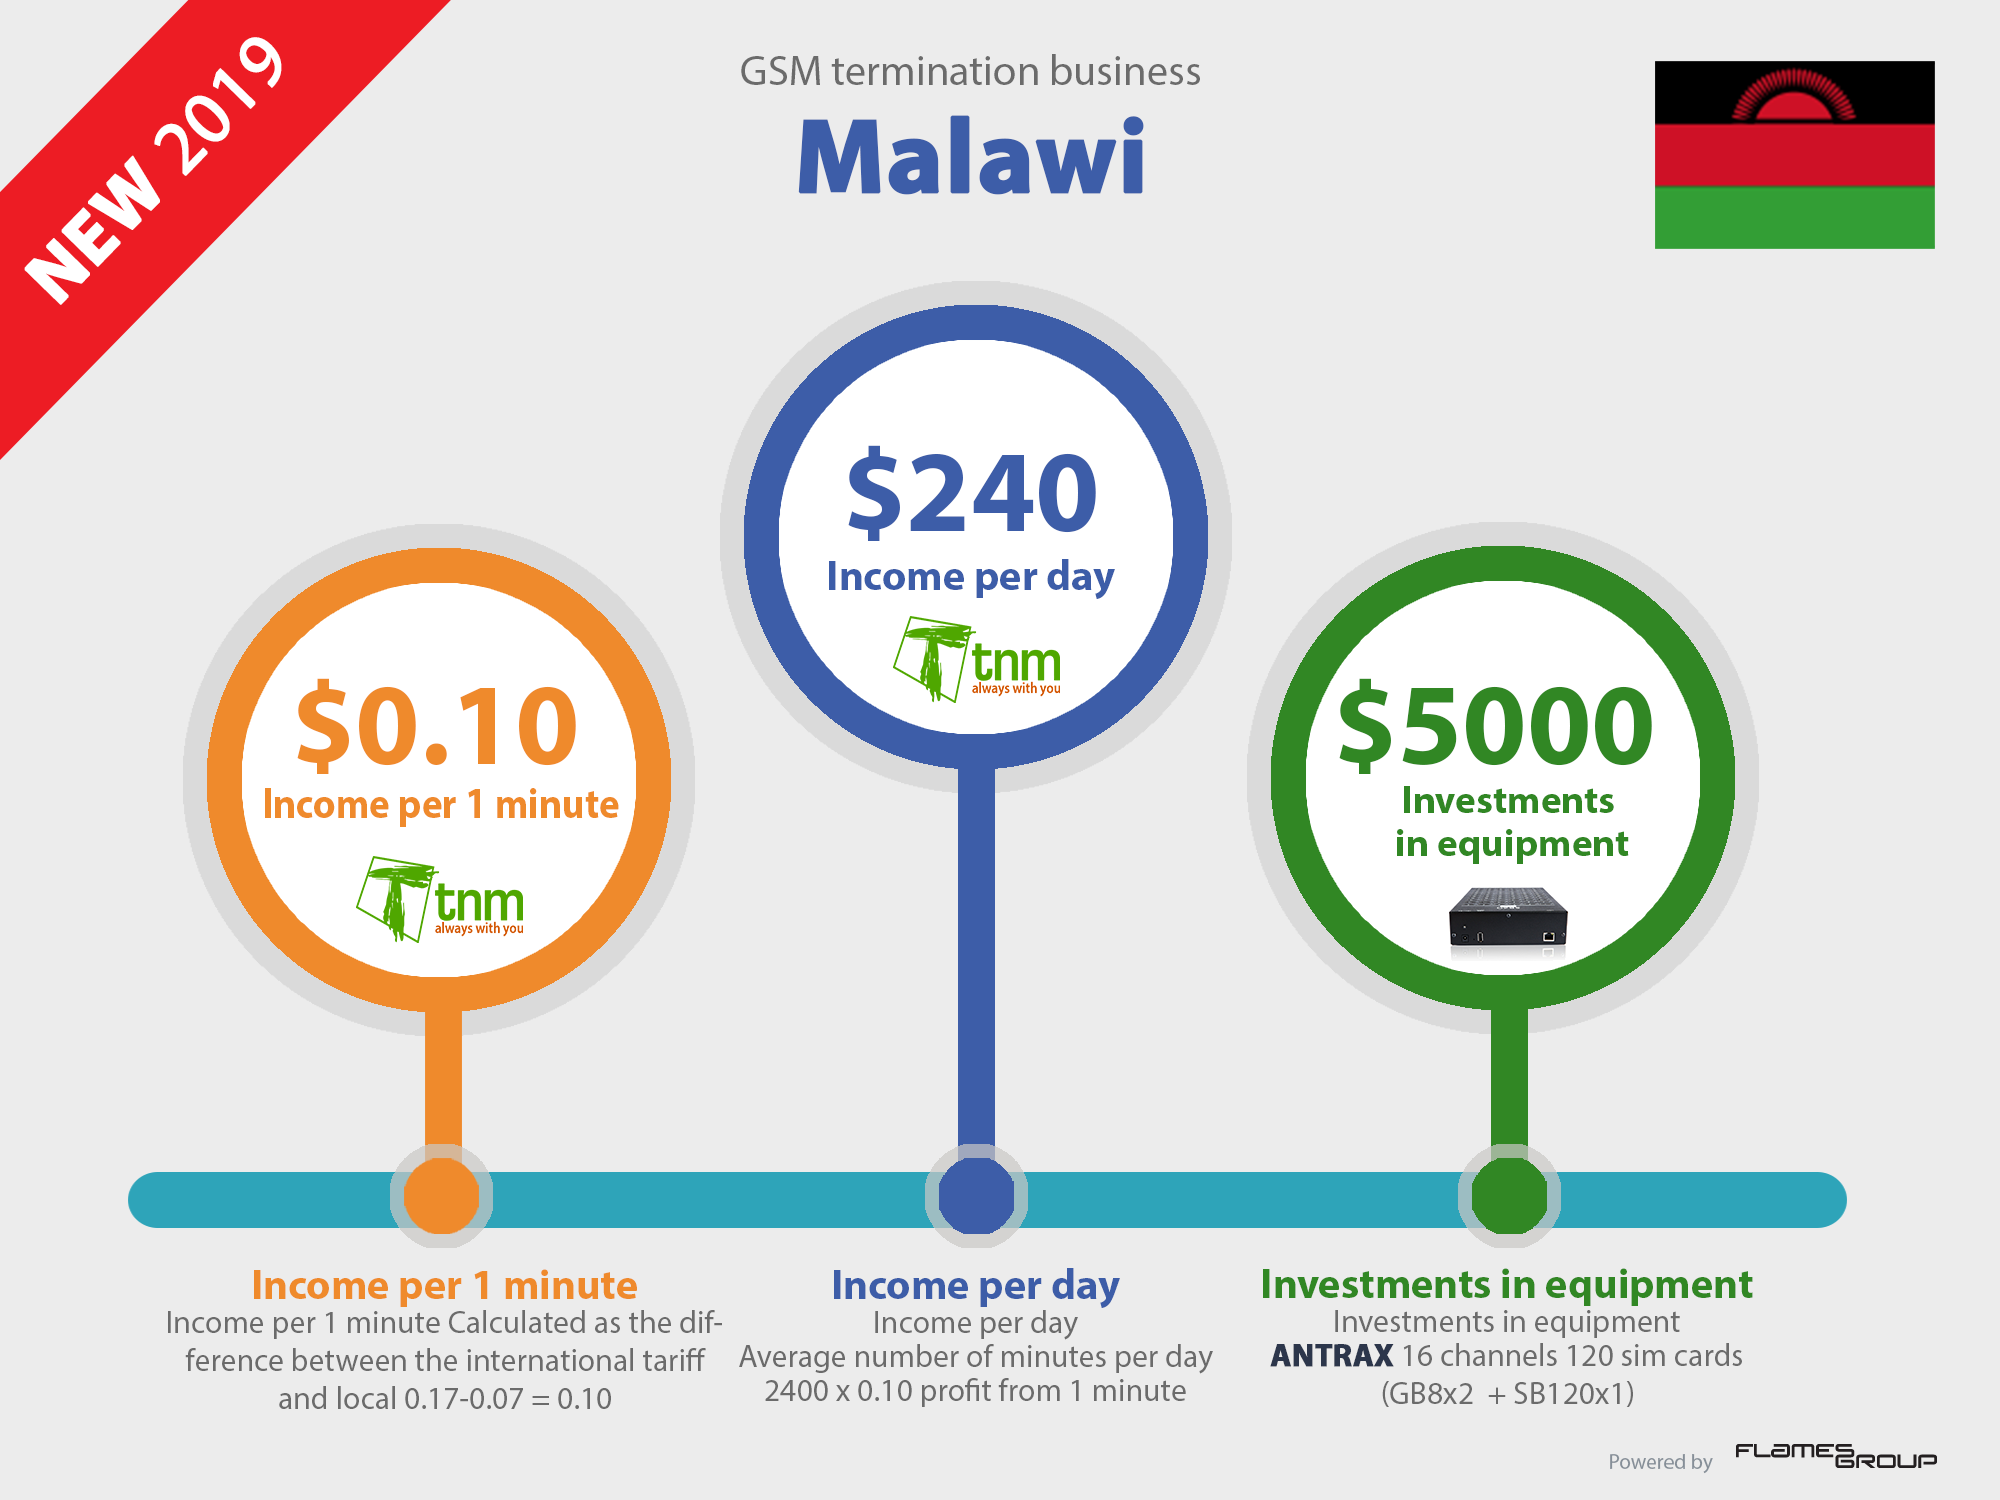 Call VoIP GSM termination business profit in Malawi Infographic ANTRAX 2019